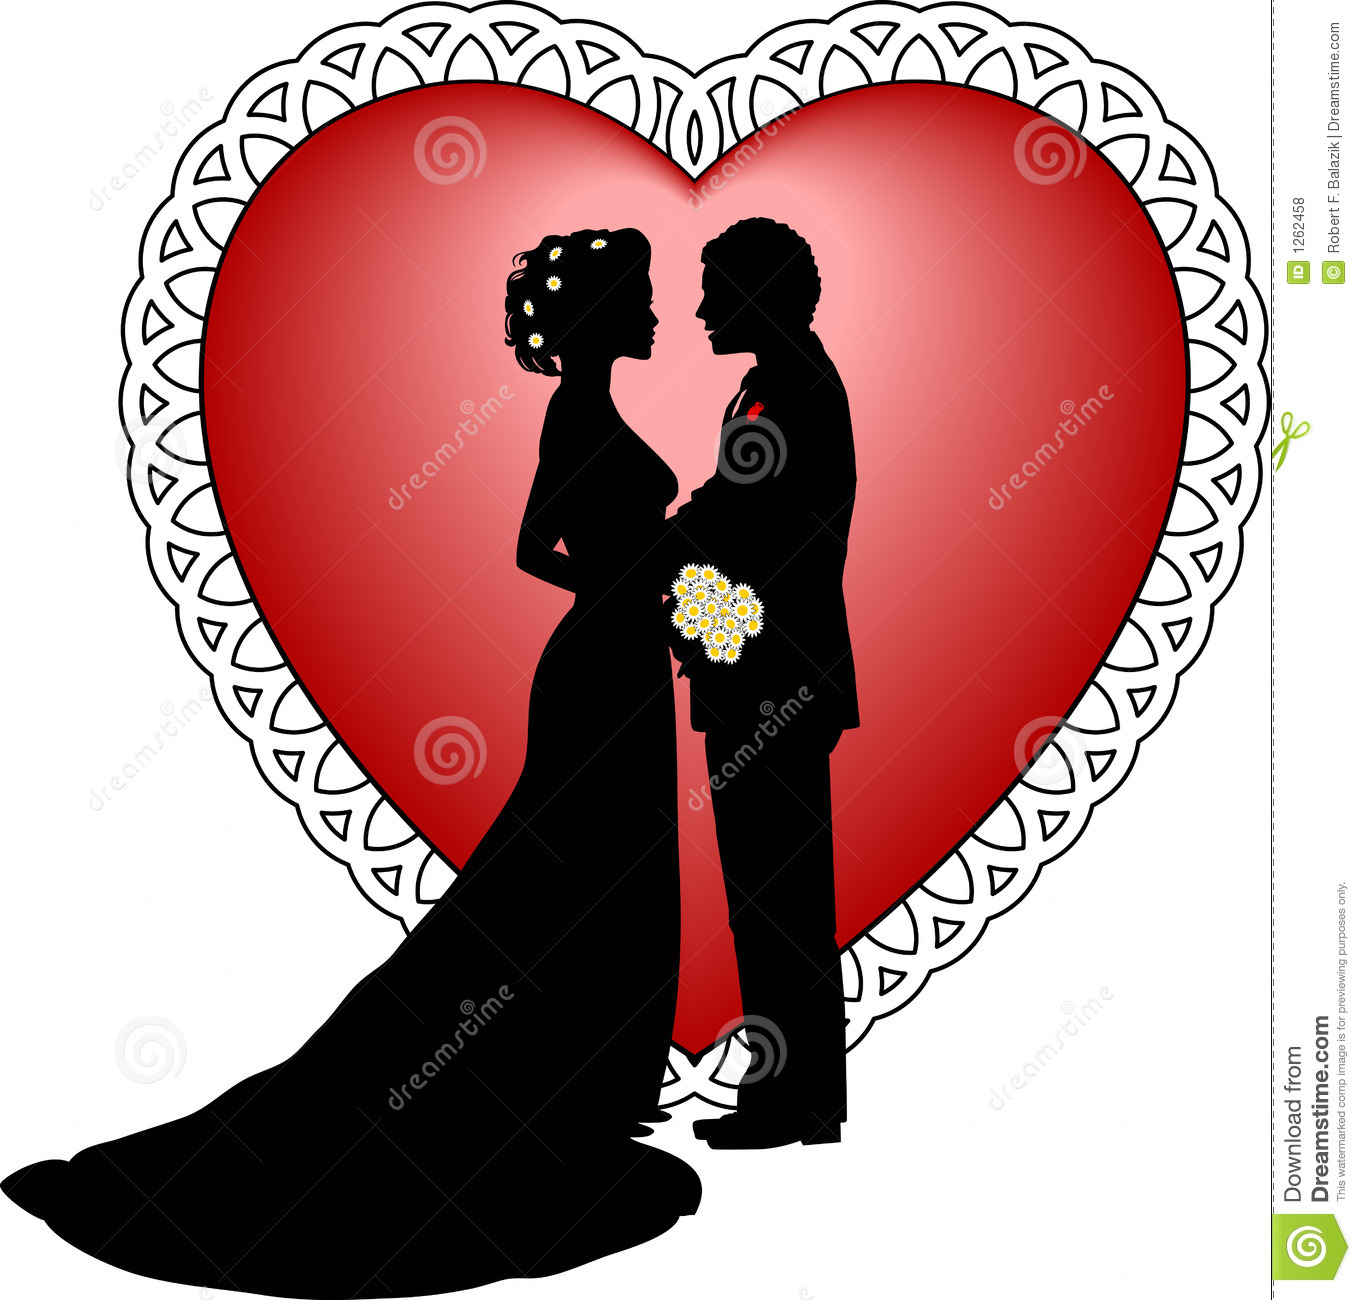 Bride groom stock vector. Illustration of marriage ...